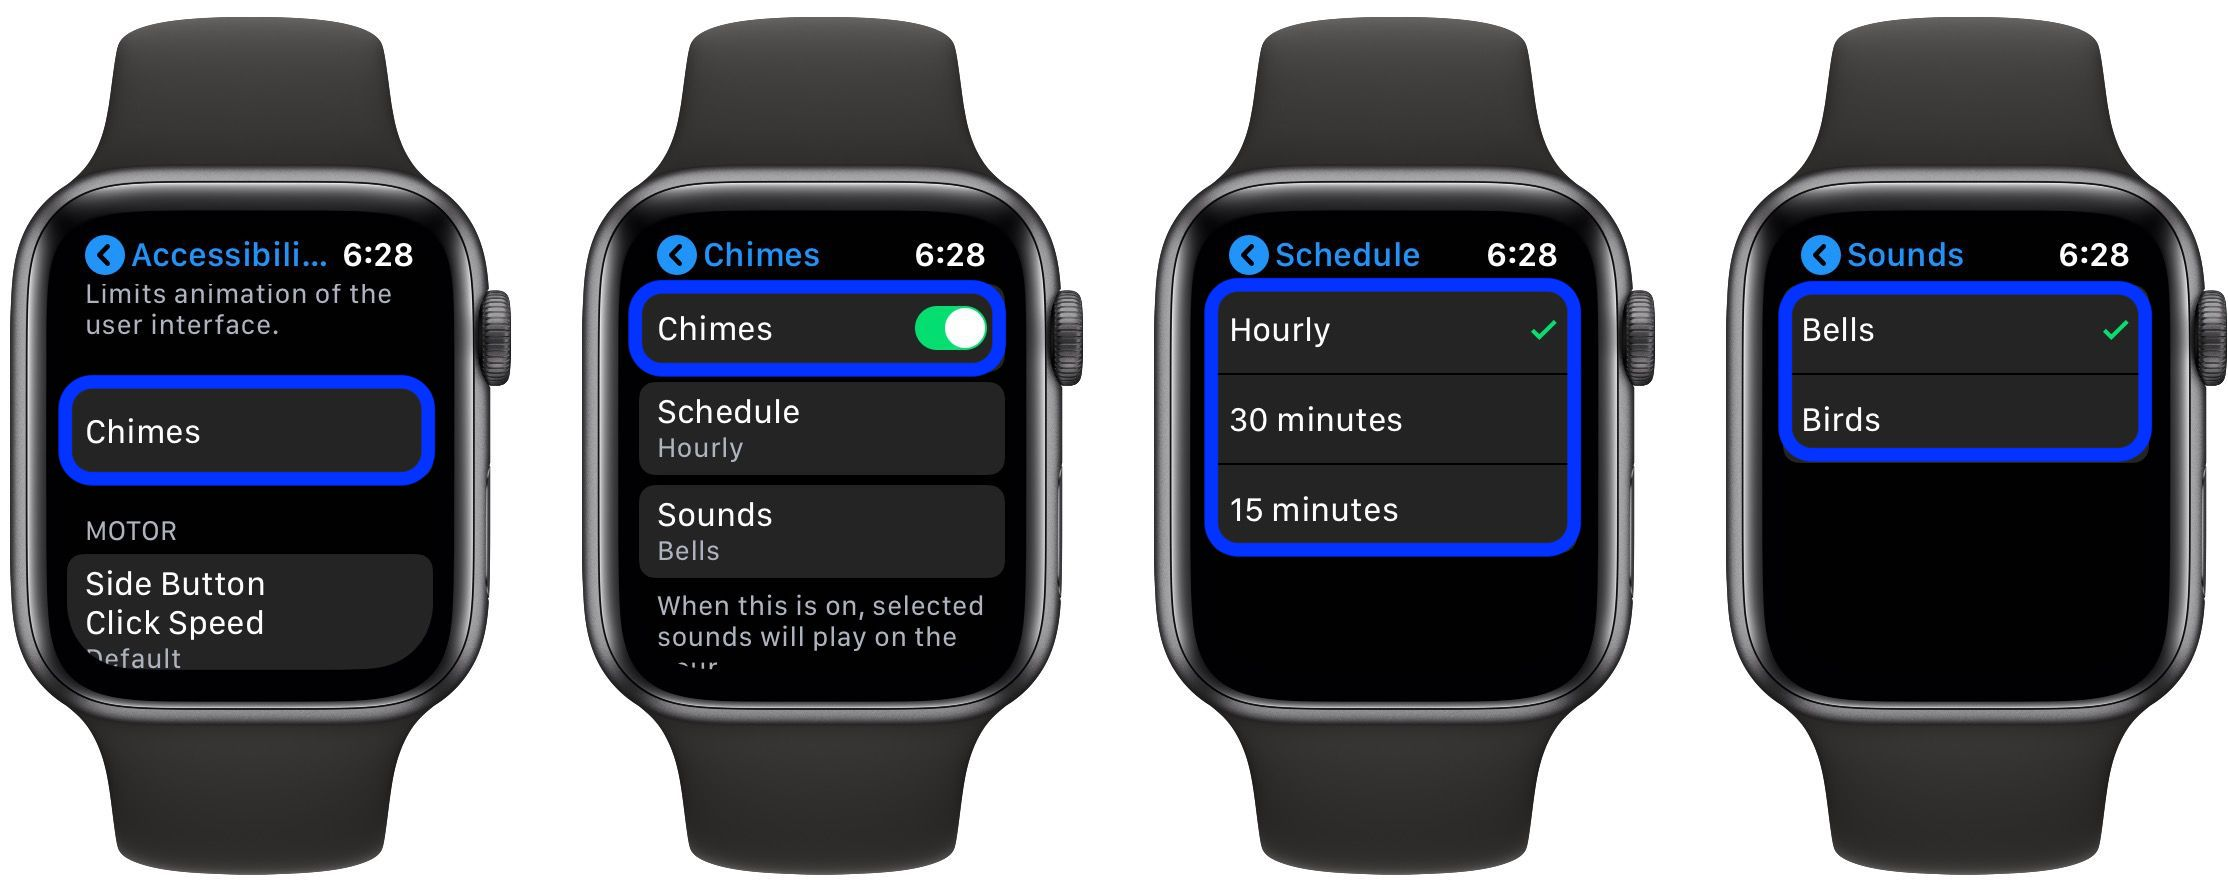 How-to-use-hourly-taptic-chimes-apple-watch-walkthrough-2